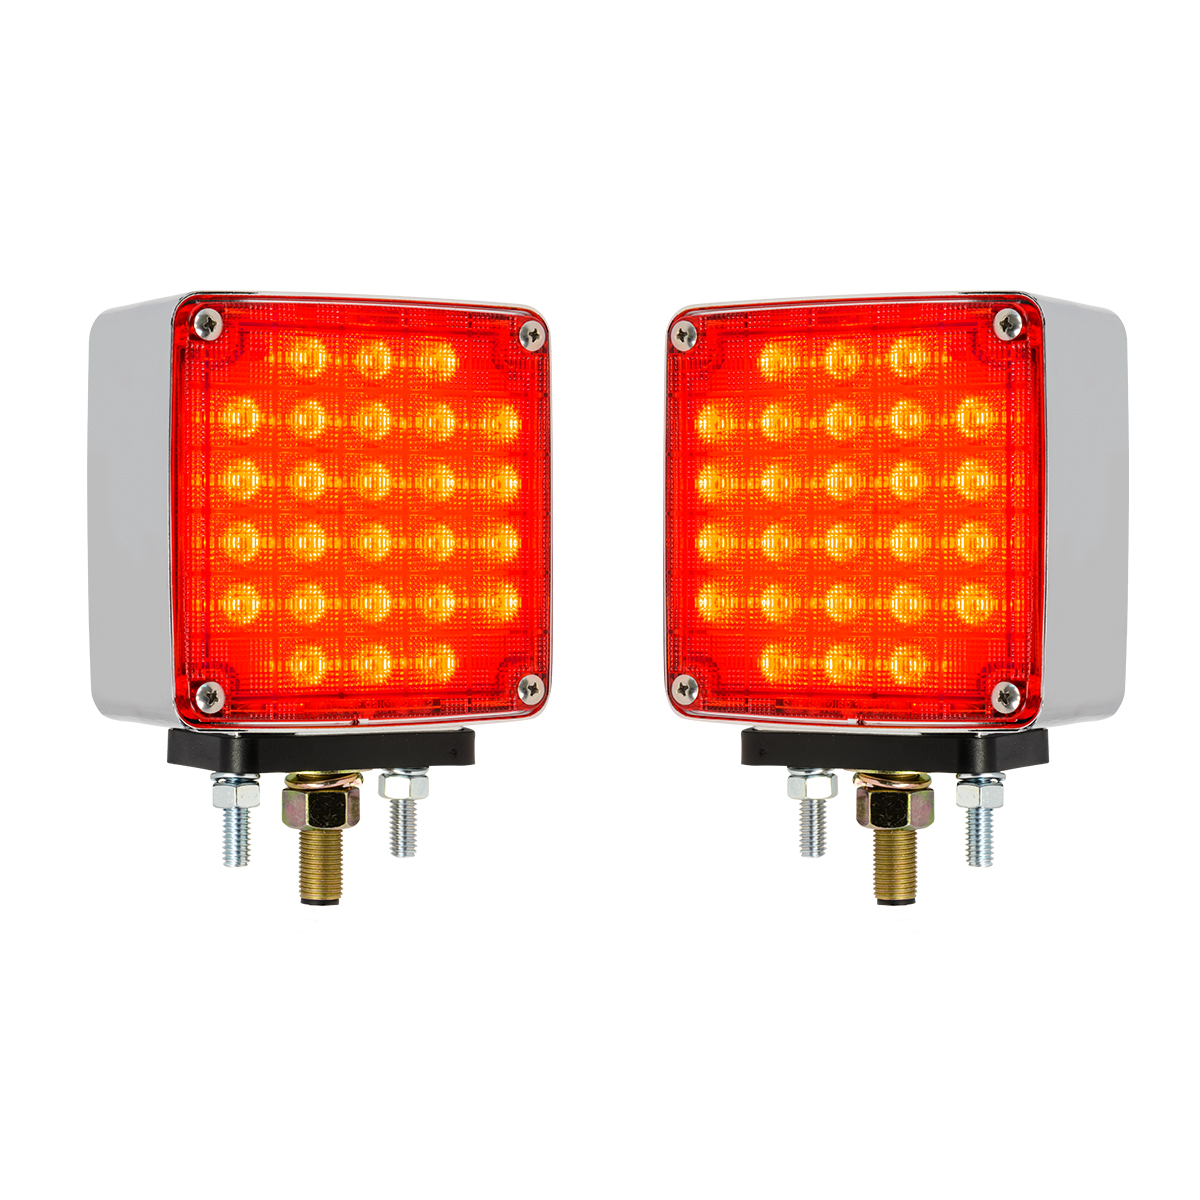 74714 Square Double Face Smart Dynamic LED Pedestal Light in Color Lens, Twin Pack